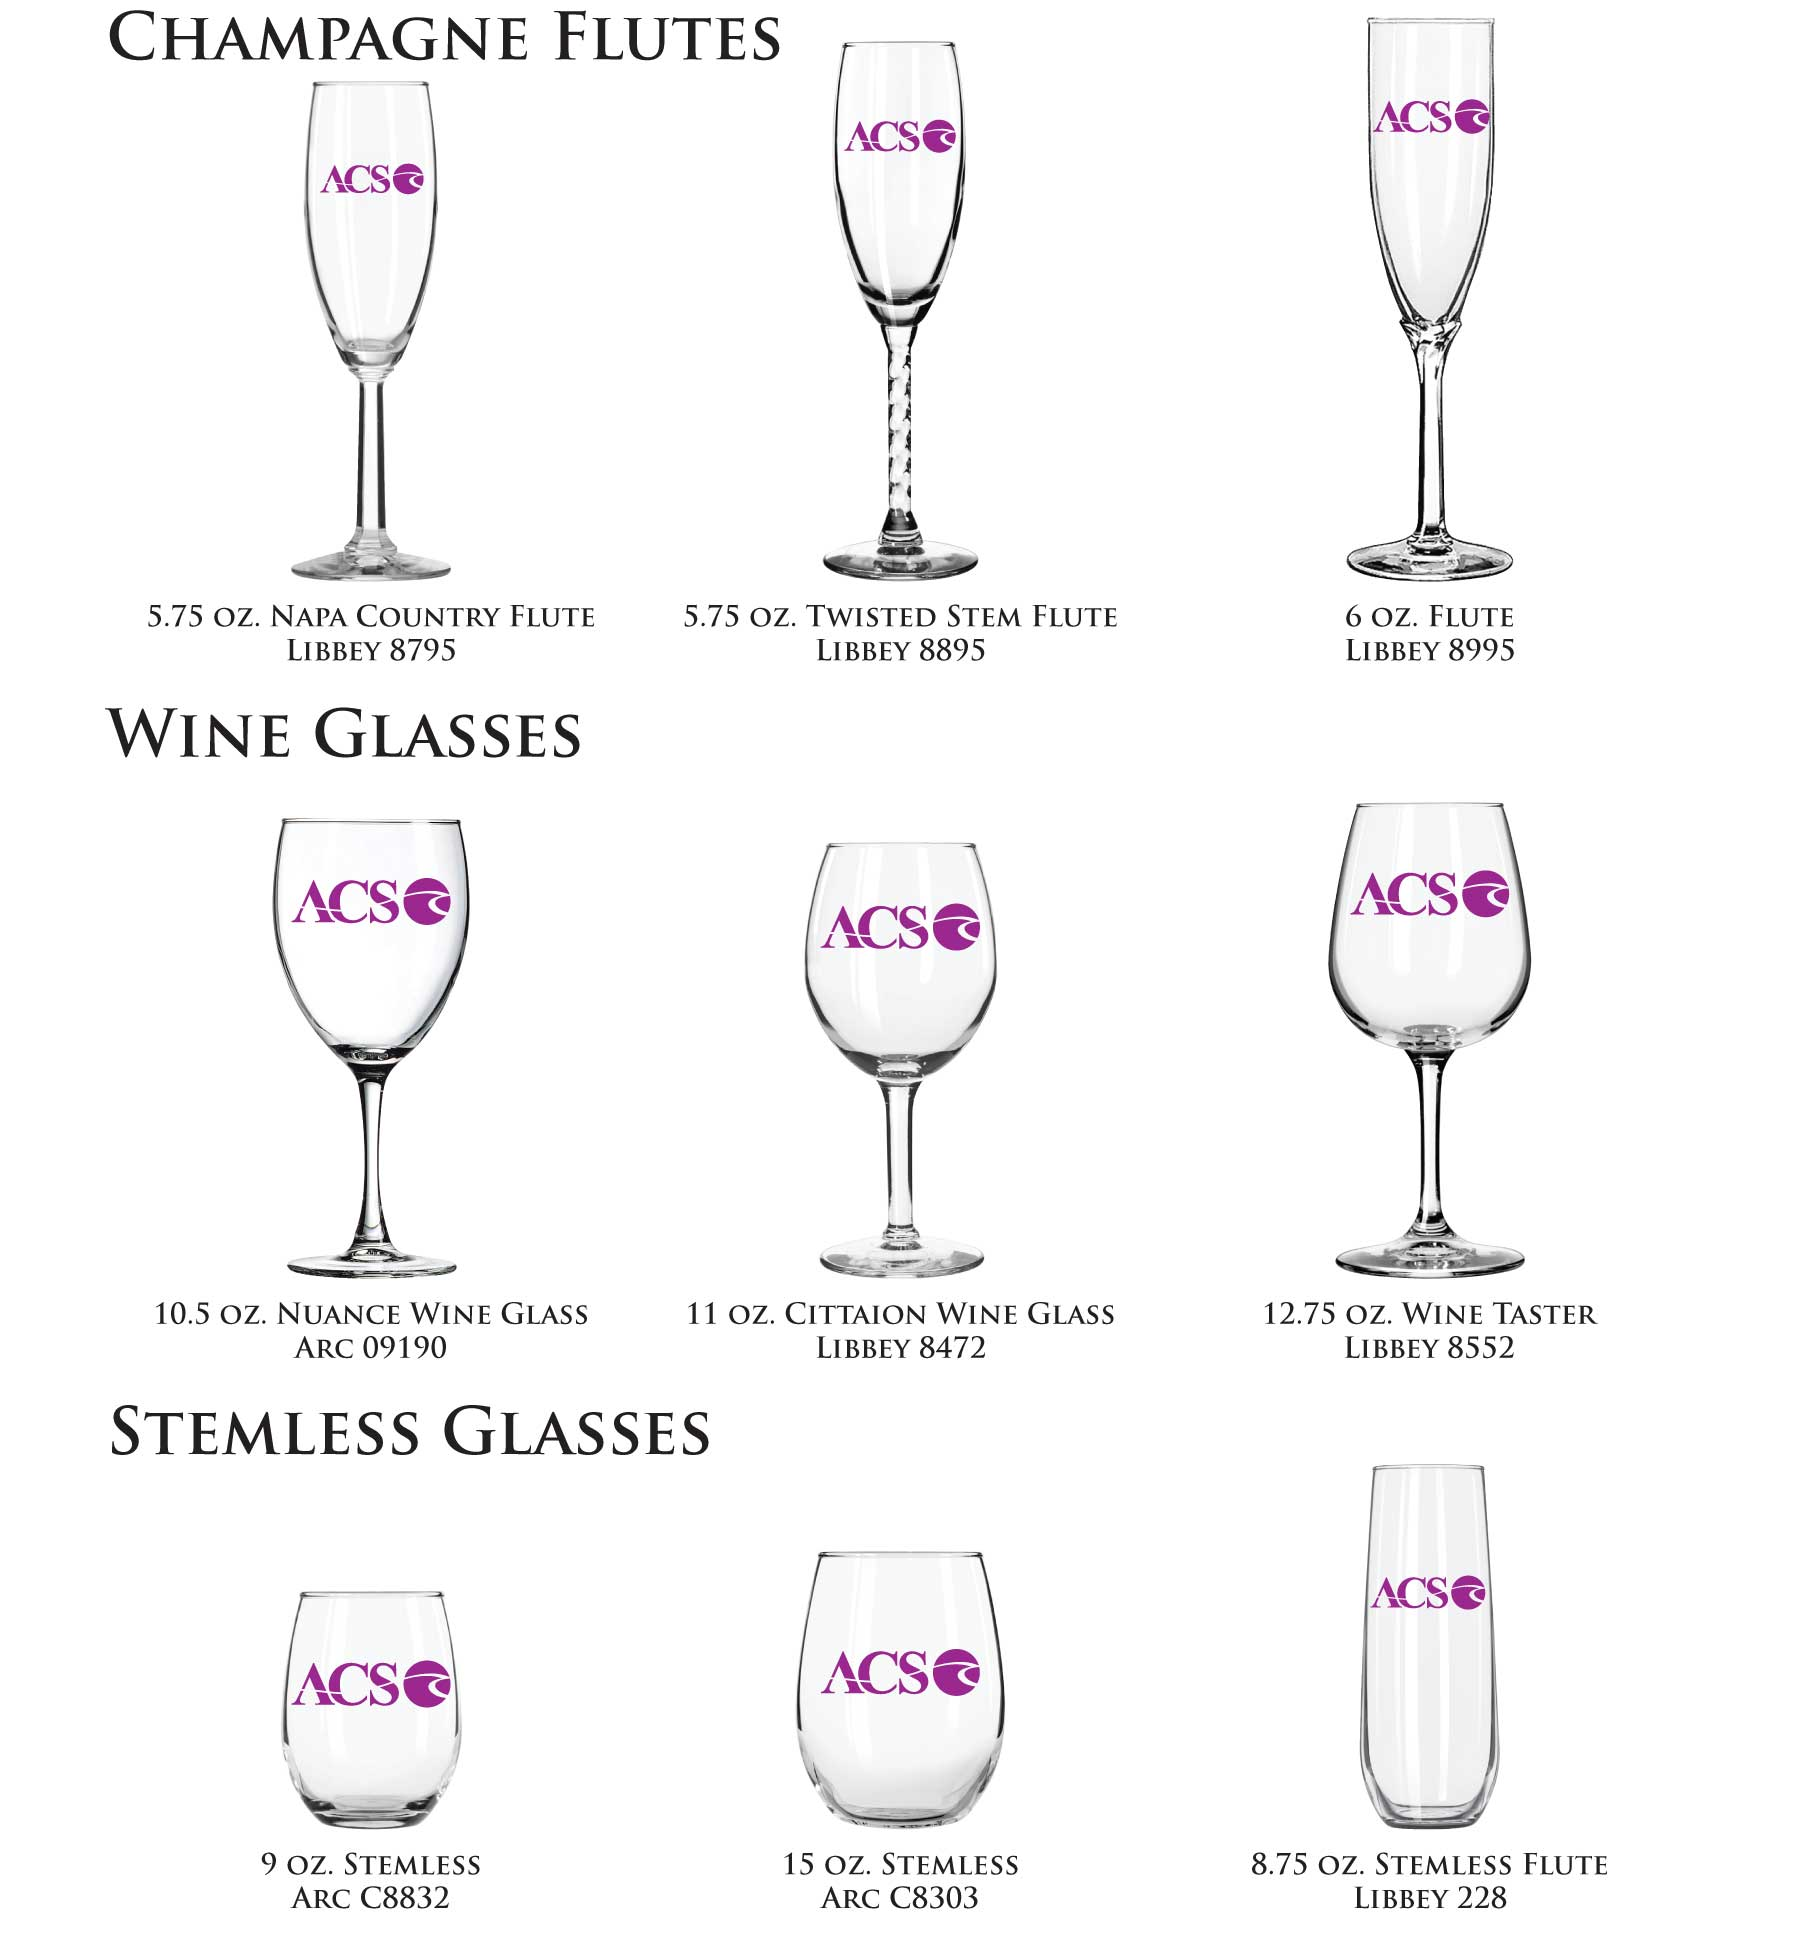 Wedding Champagne Flutes, Wedding Wine Glasses, Wedding Stemless Glasses